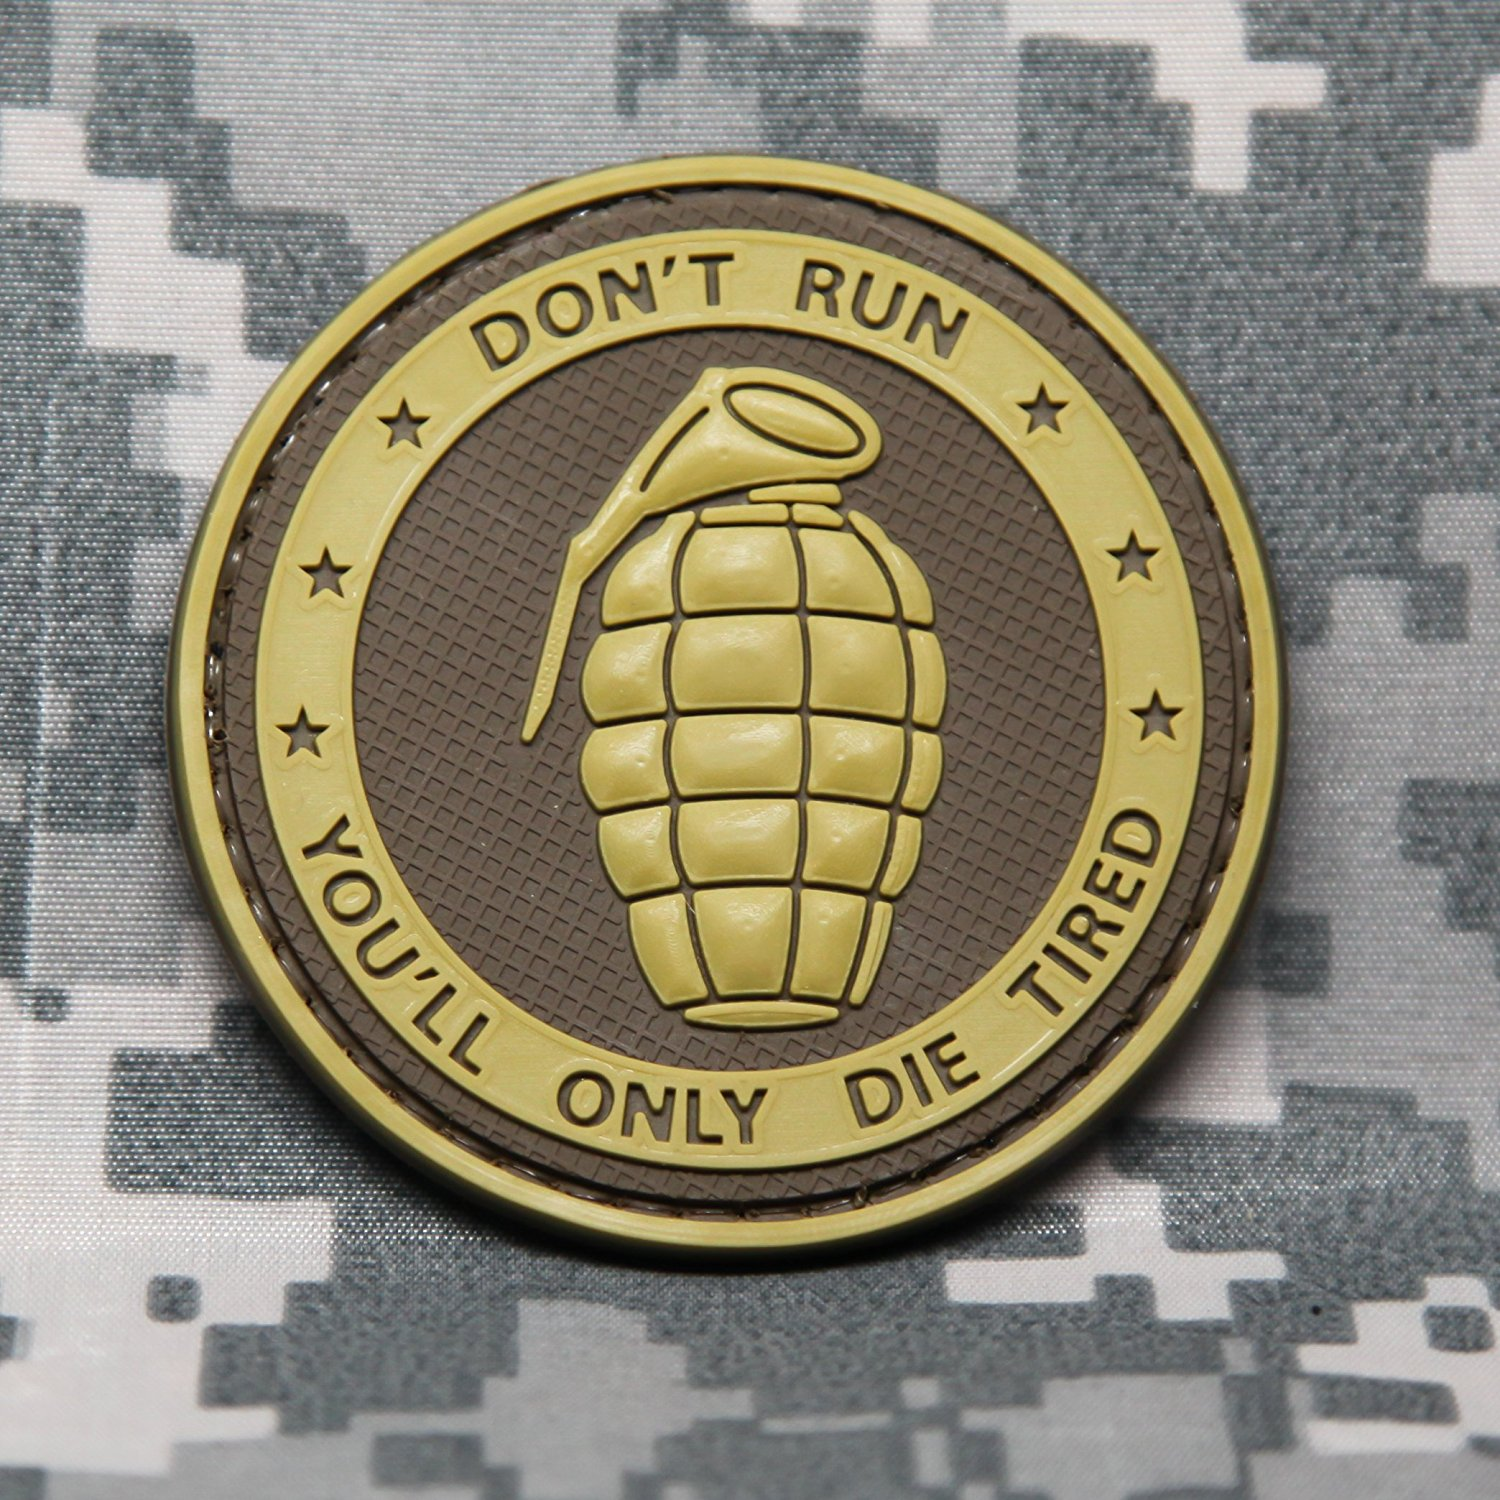 DON'T RUN YOU'LL ONLY DIE TIRED - PVC Morale Patch, Velcro Morale Patch by NEO Tactical Gear